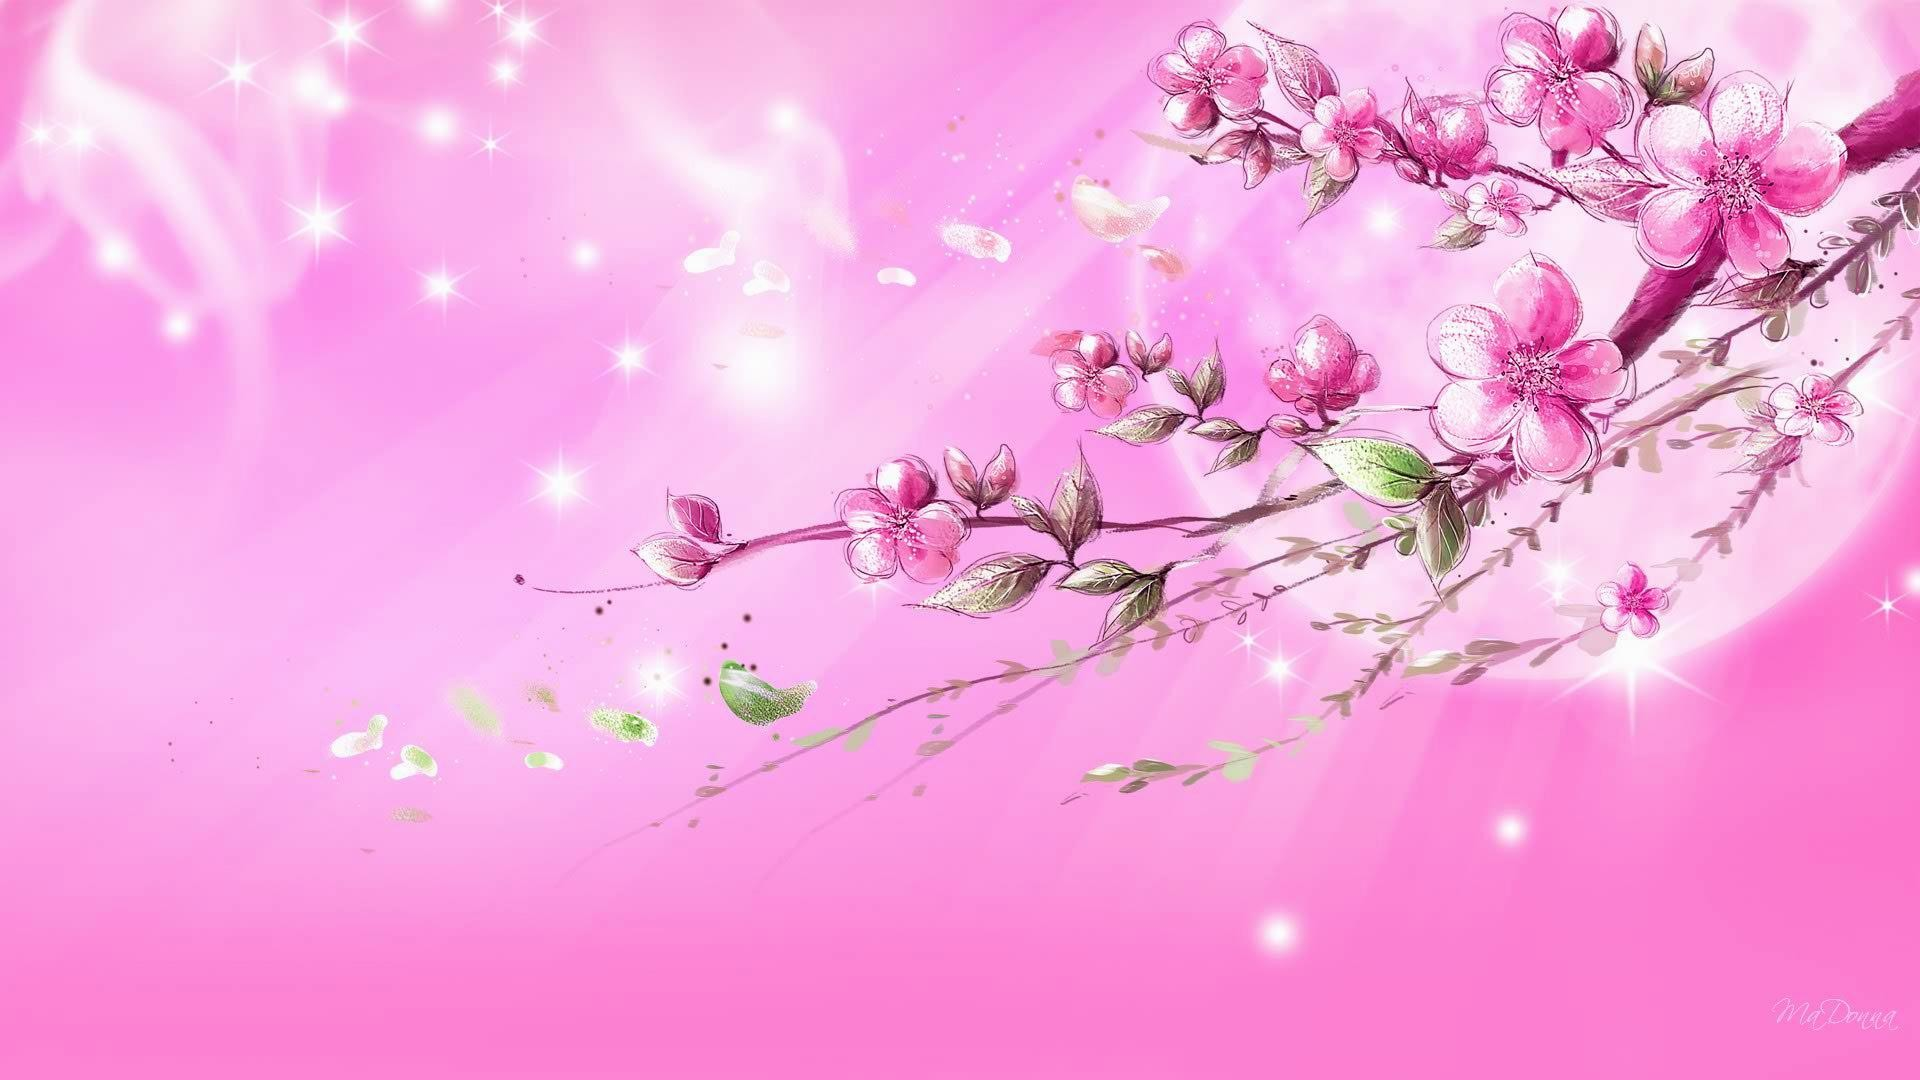 Free-Cool-Pink-Iphone-Image-Download